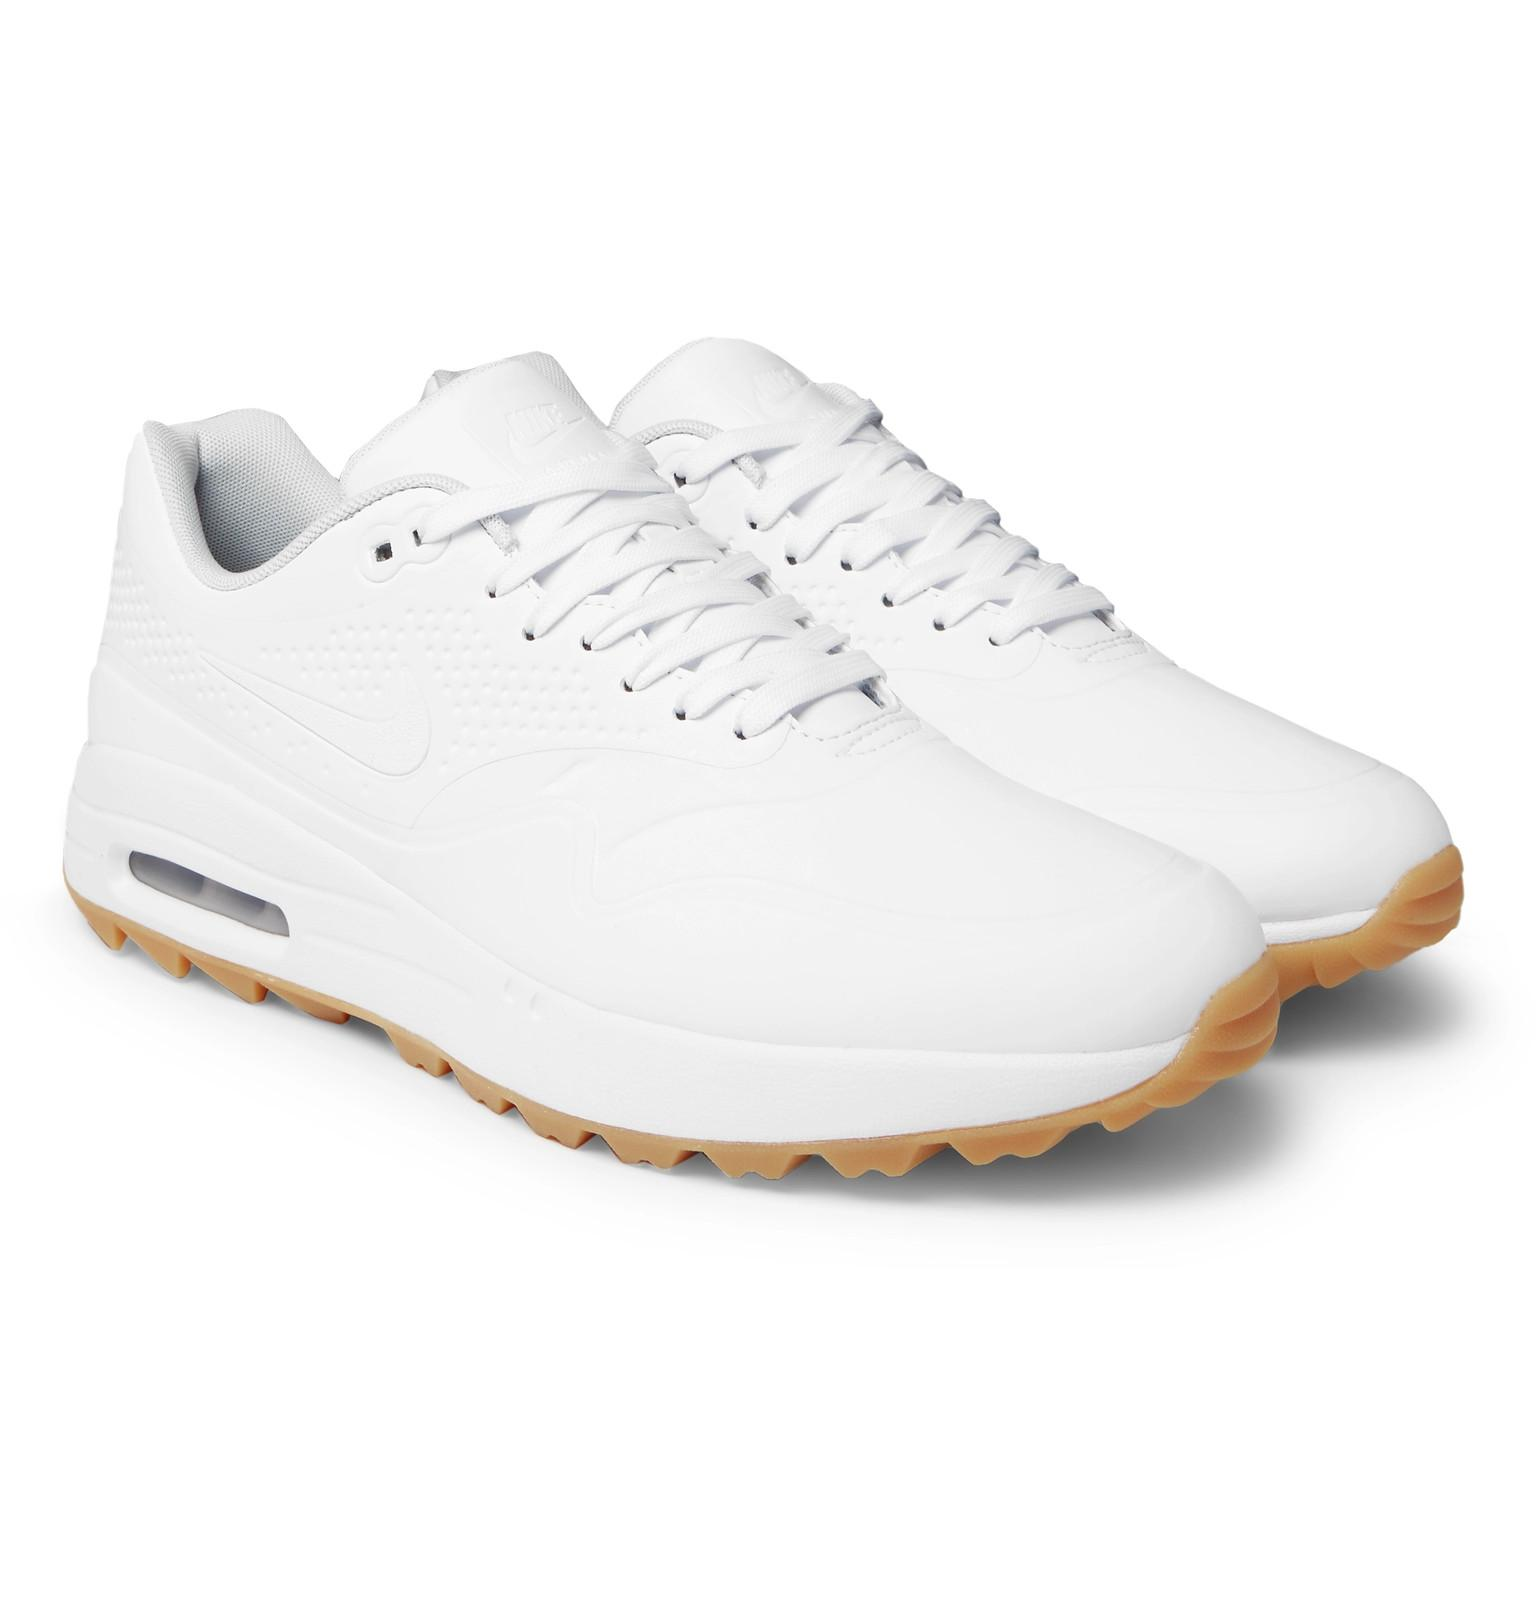 separation shoes 0c709 f7caa Nike Air Max 1g Coated Mesh Golf Shoes in White for Men - Lyst